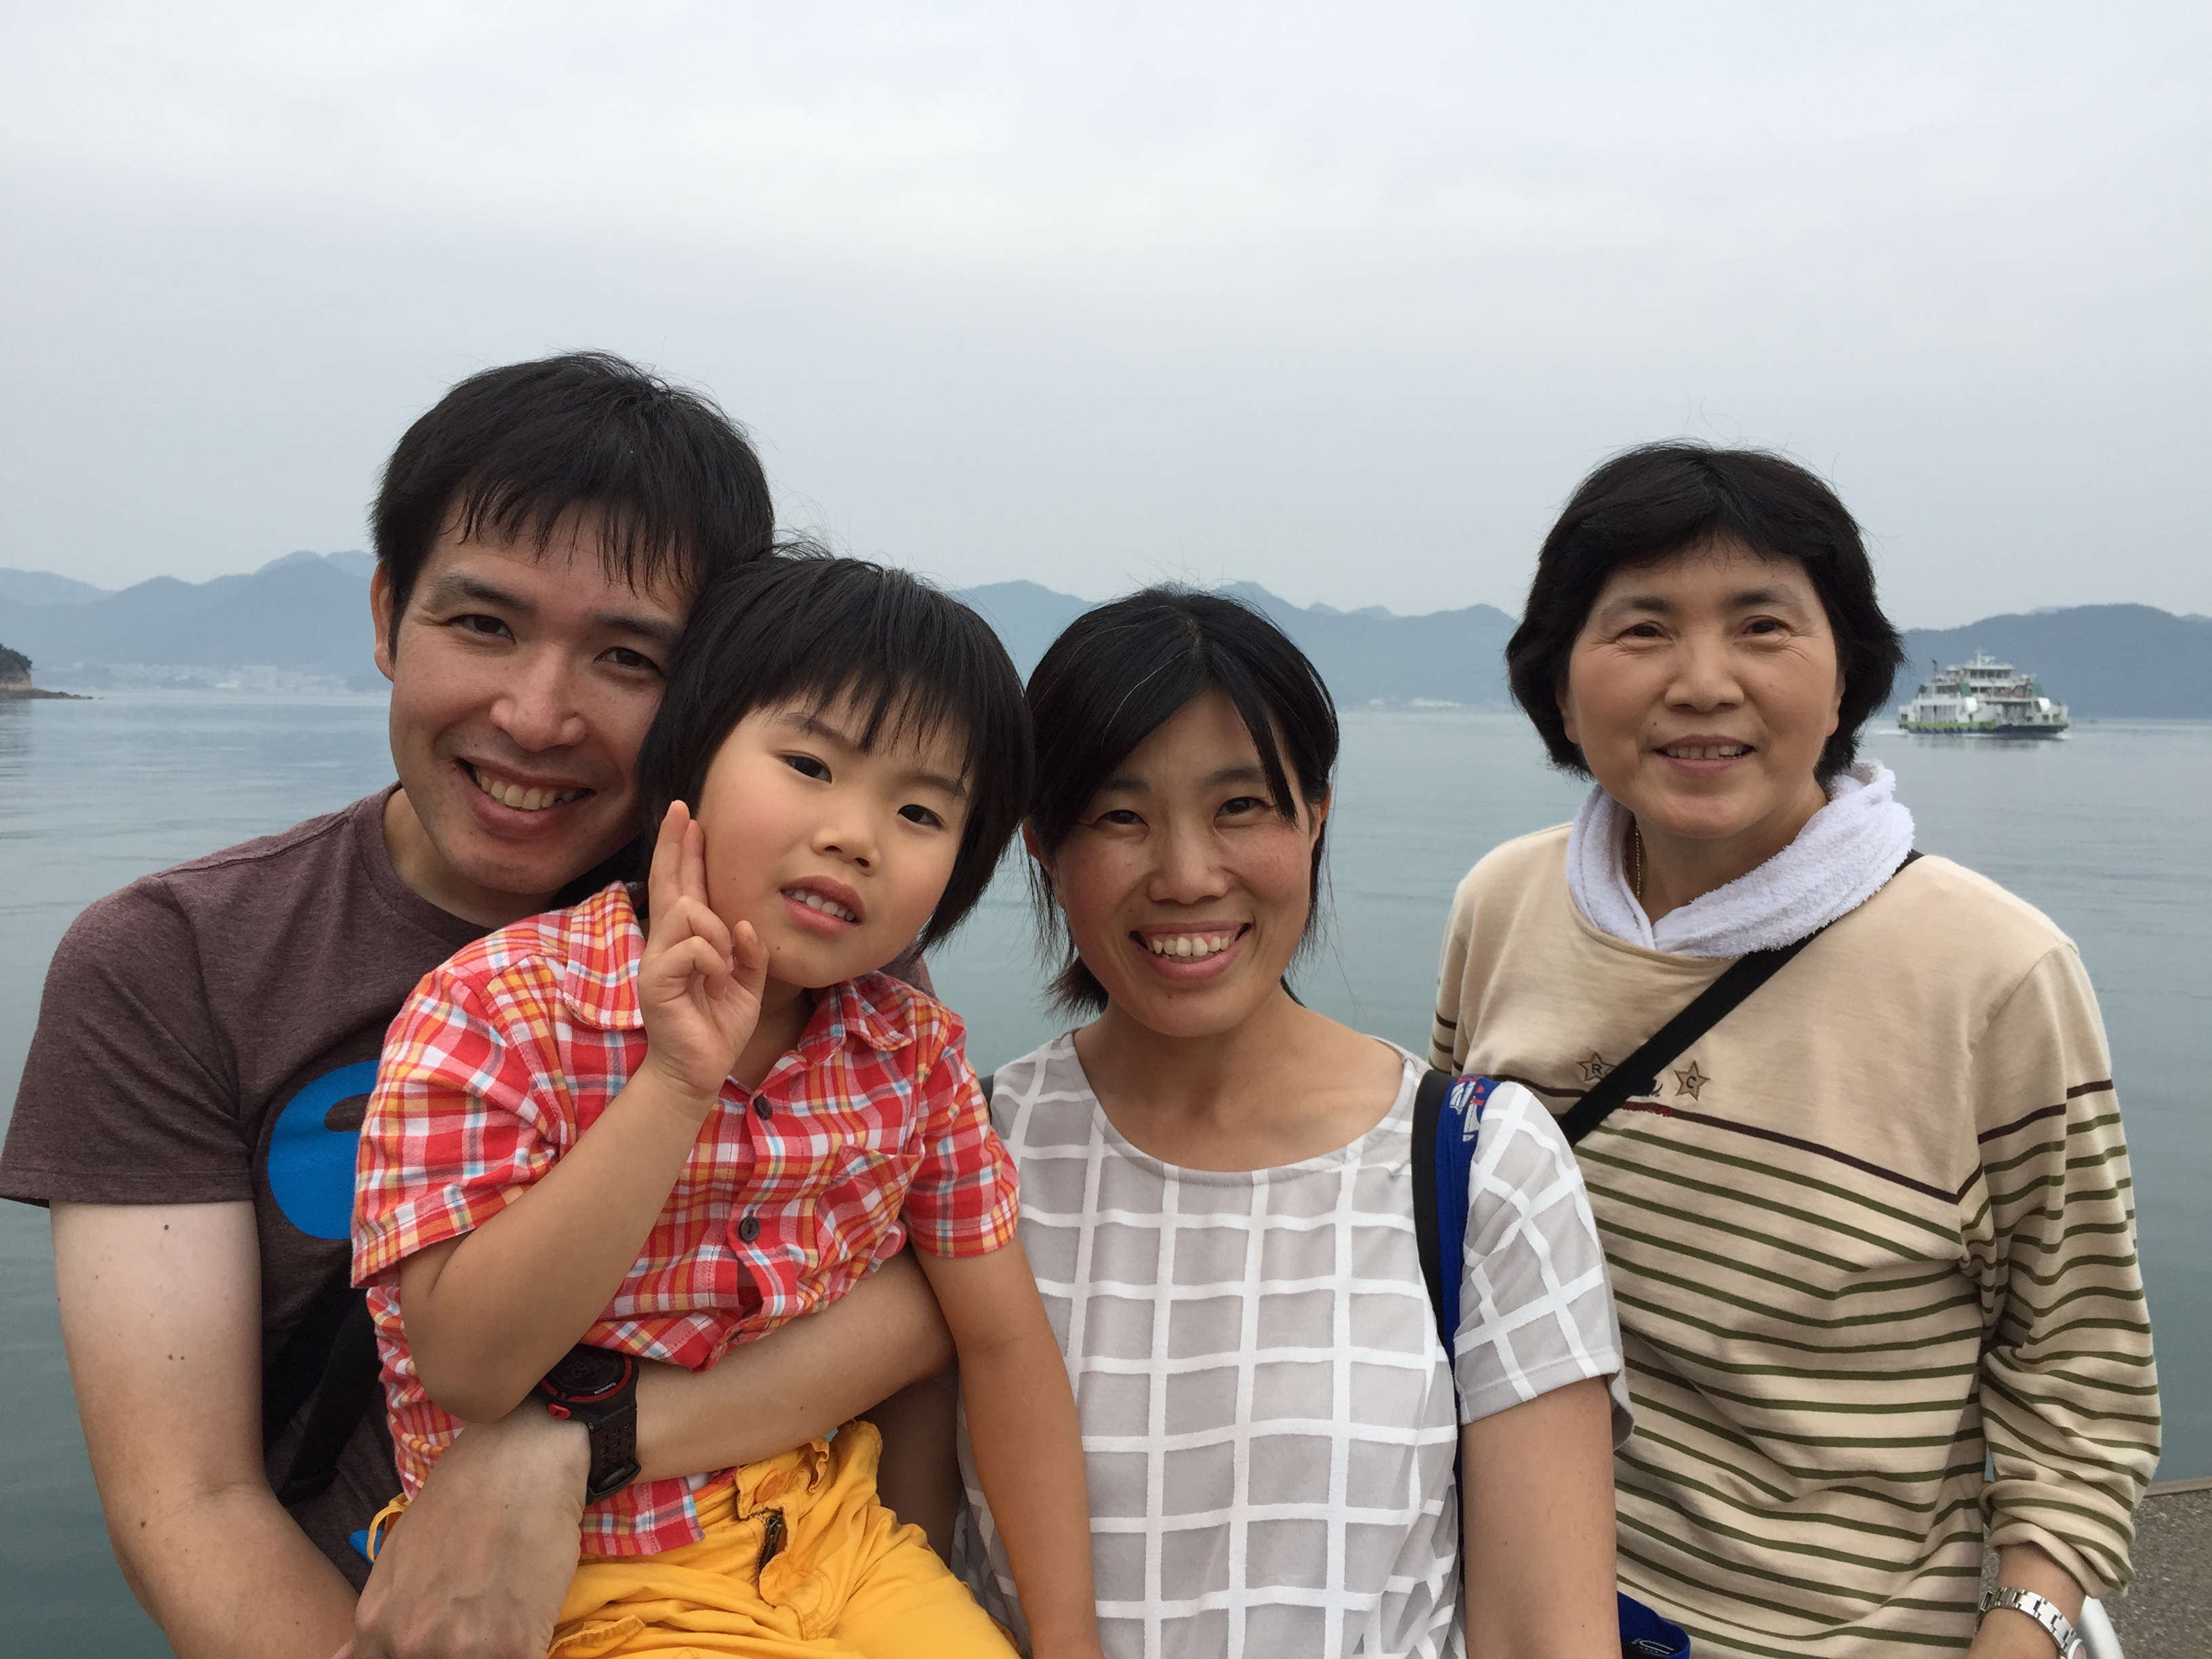 Group photo of the Araragis family - Keisuke, Shogo, Reiko, and Teruko Kawachika (Reiko's mother) on Okunoshima waiting for the ferry back to Hiroshima